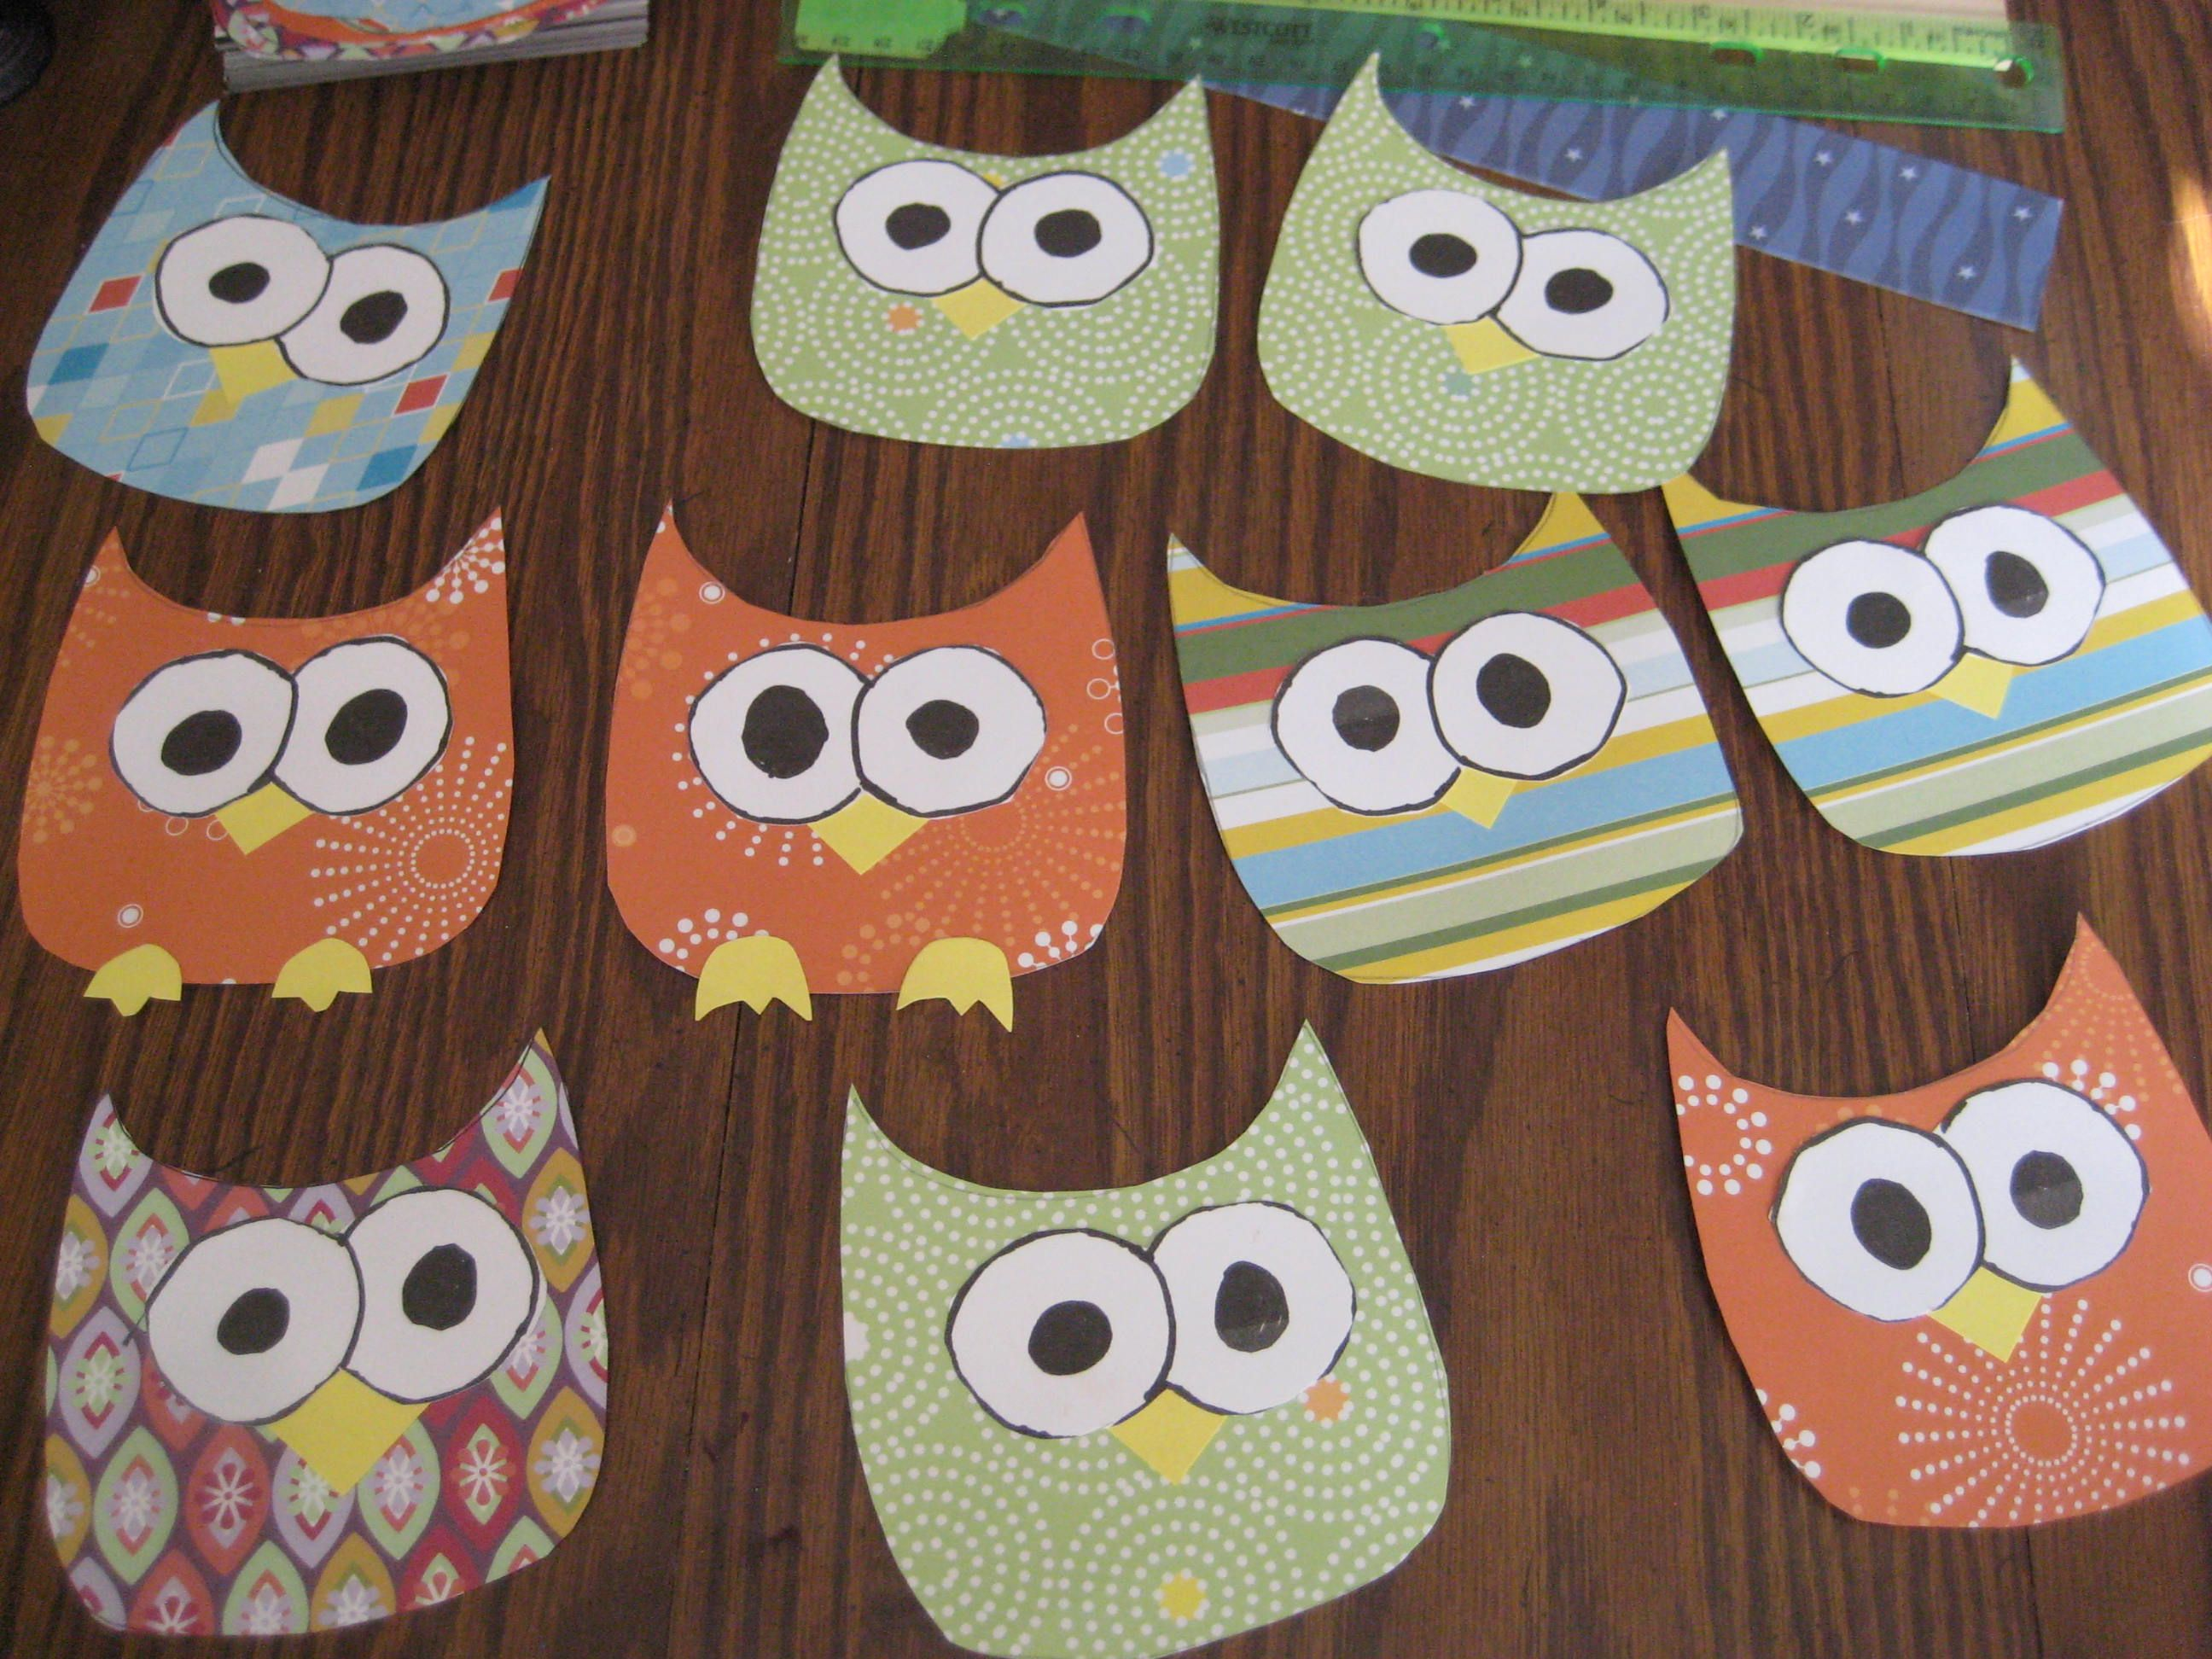 Cute Owl Classroom Decorations ~ Owl classroom theme ideas cute for decorating and i